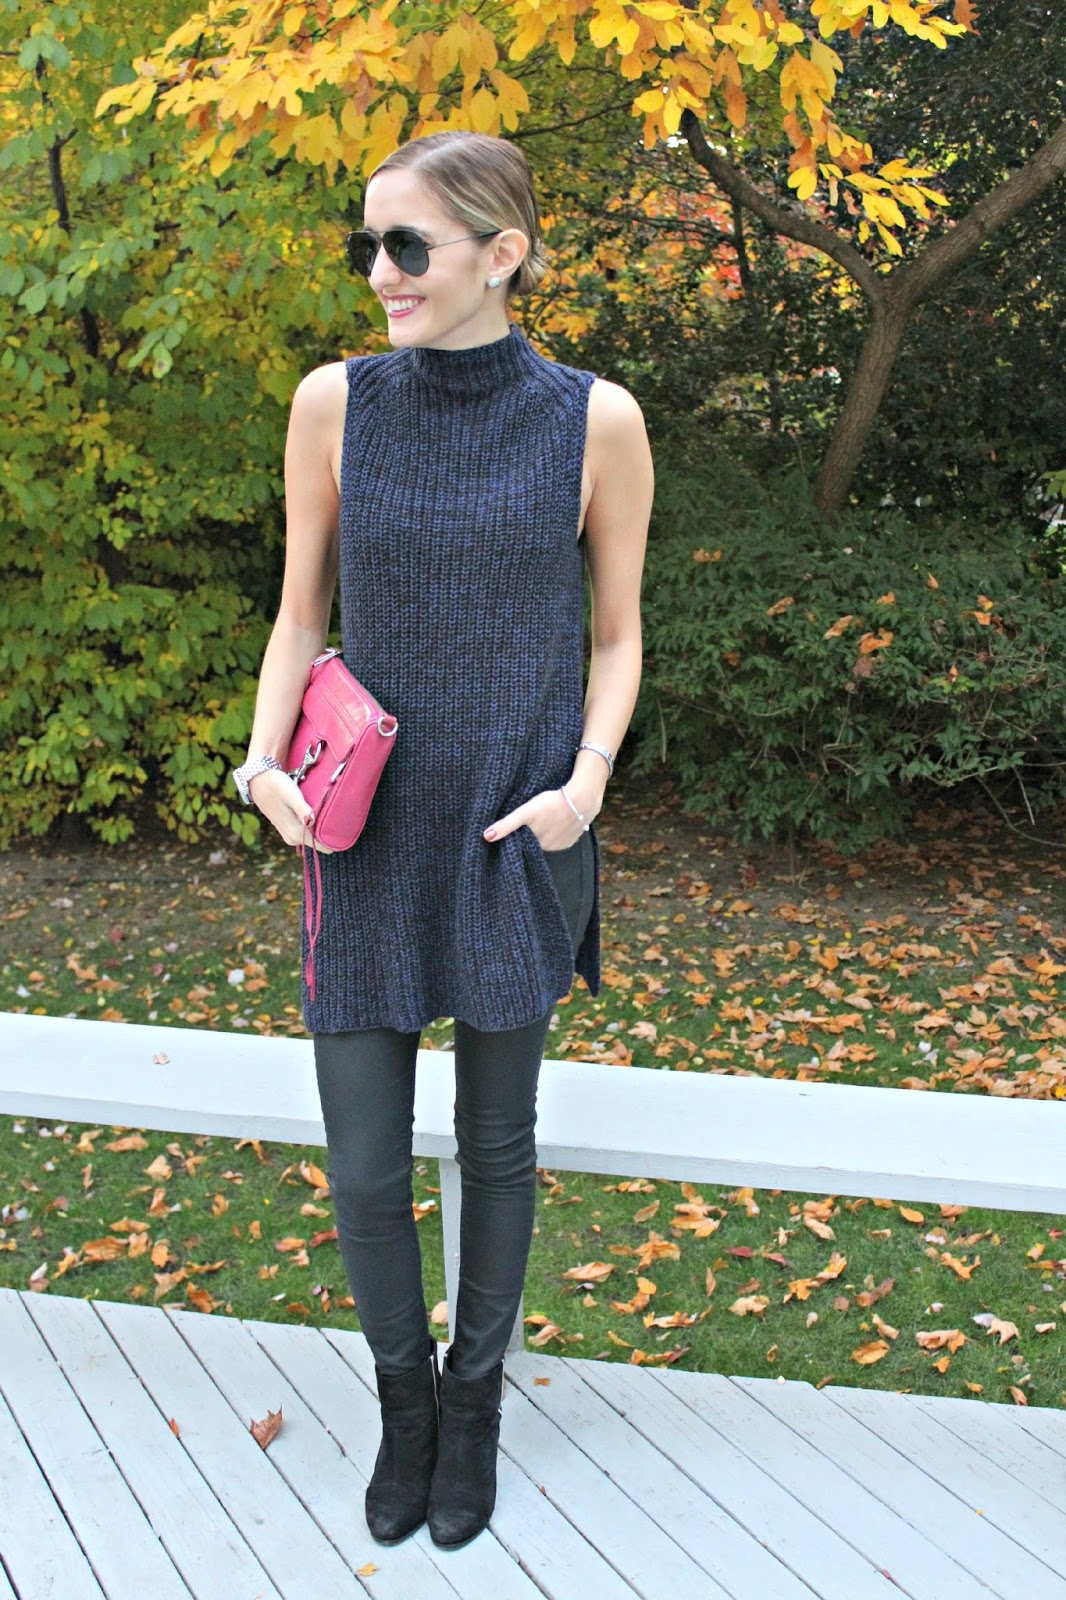 styling a sleeveless turtleneck